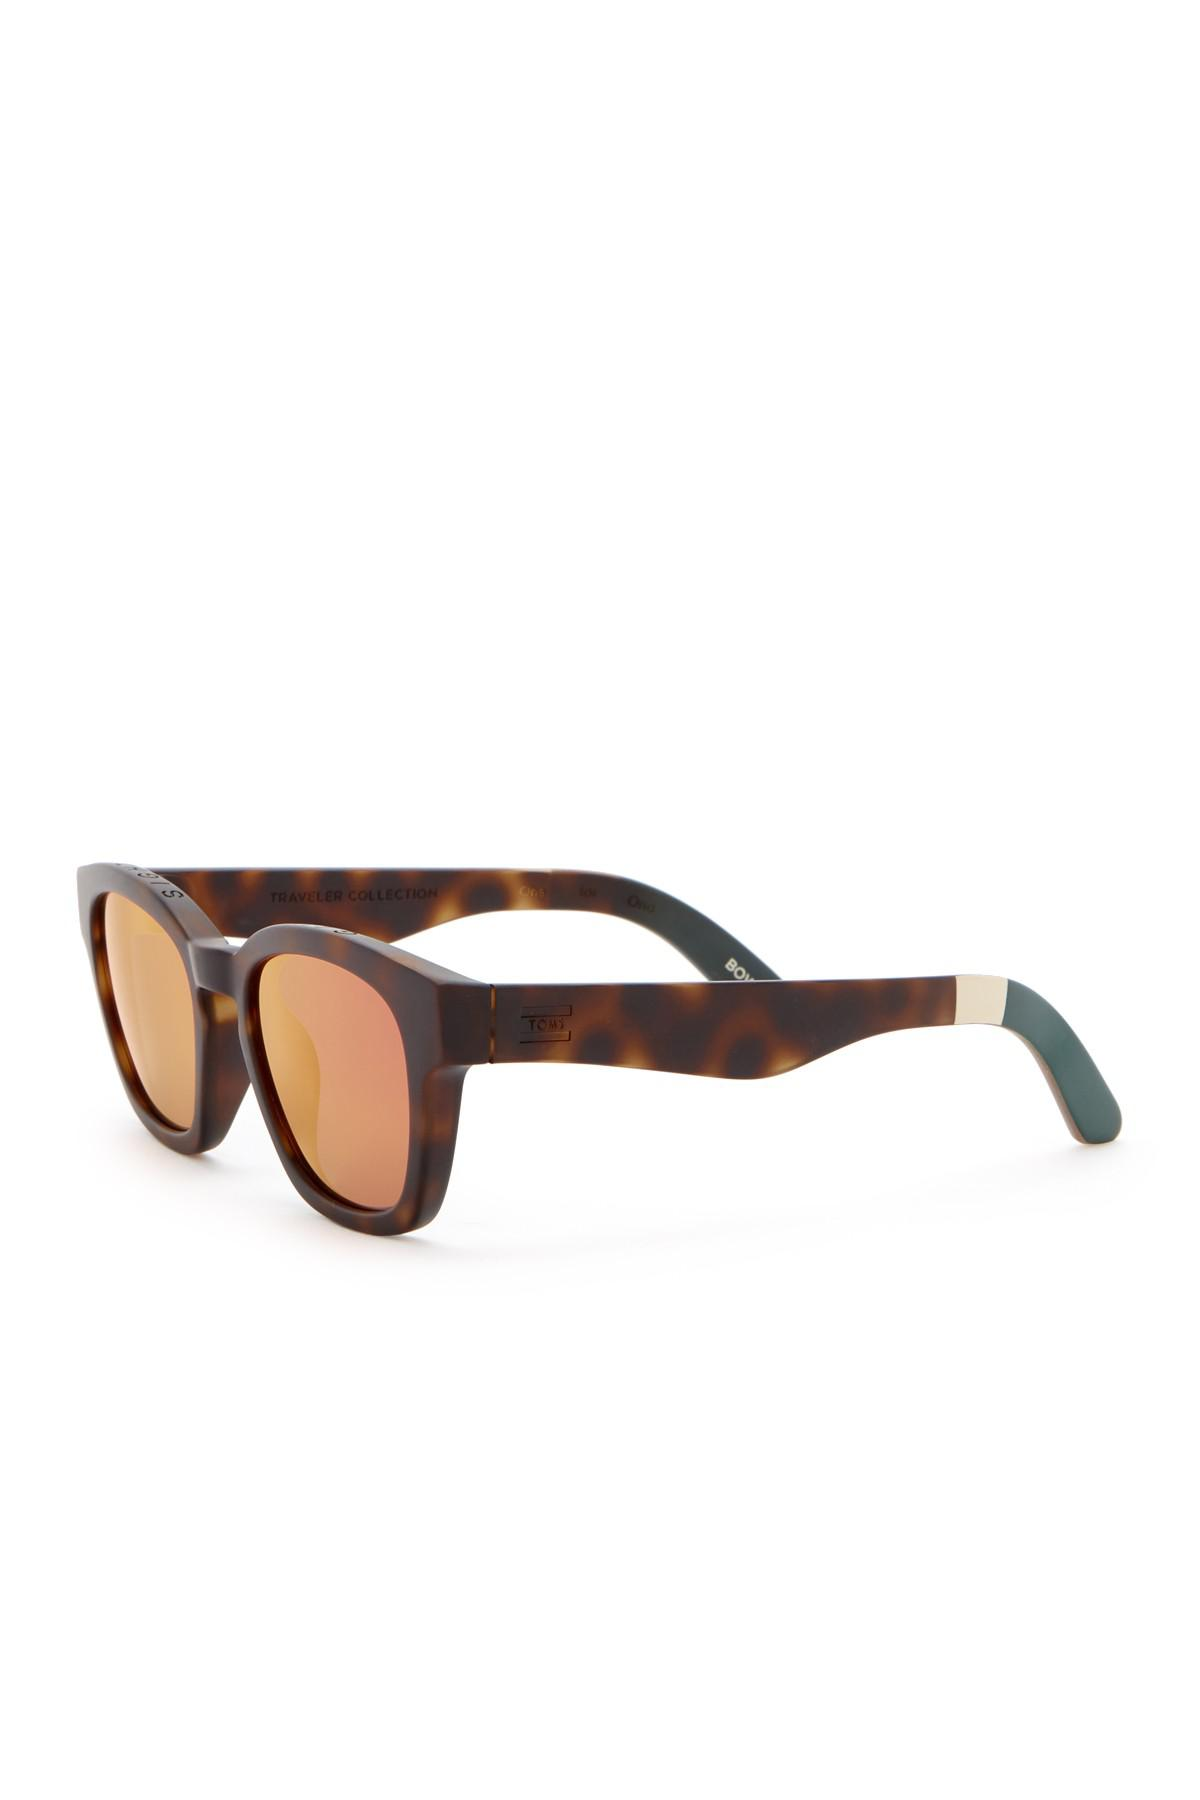 6a51c12658f6 Lyst - TOMS Bowery 51mm Retro Sunglasses for Men